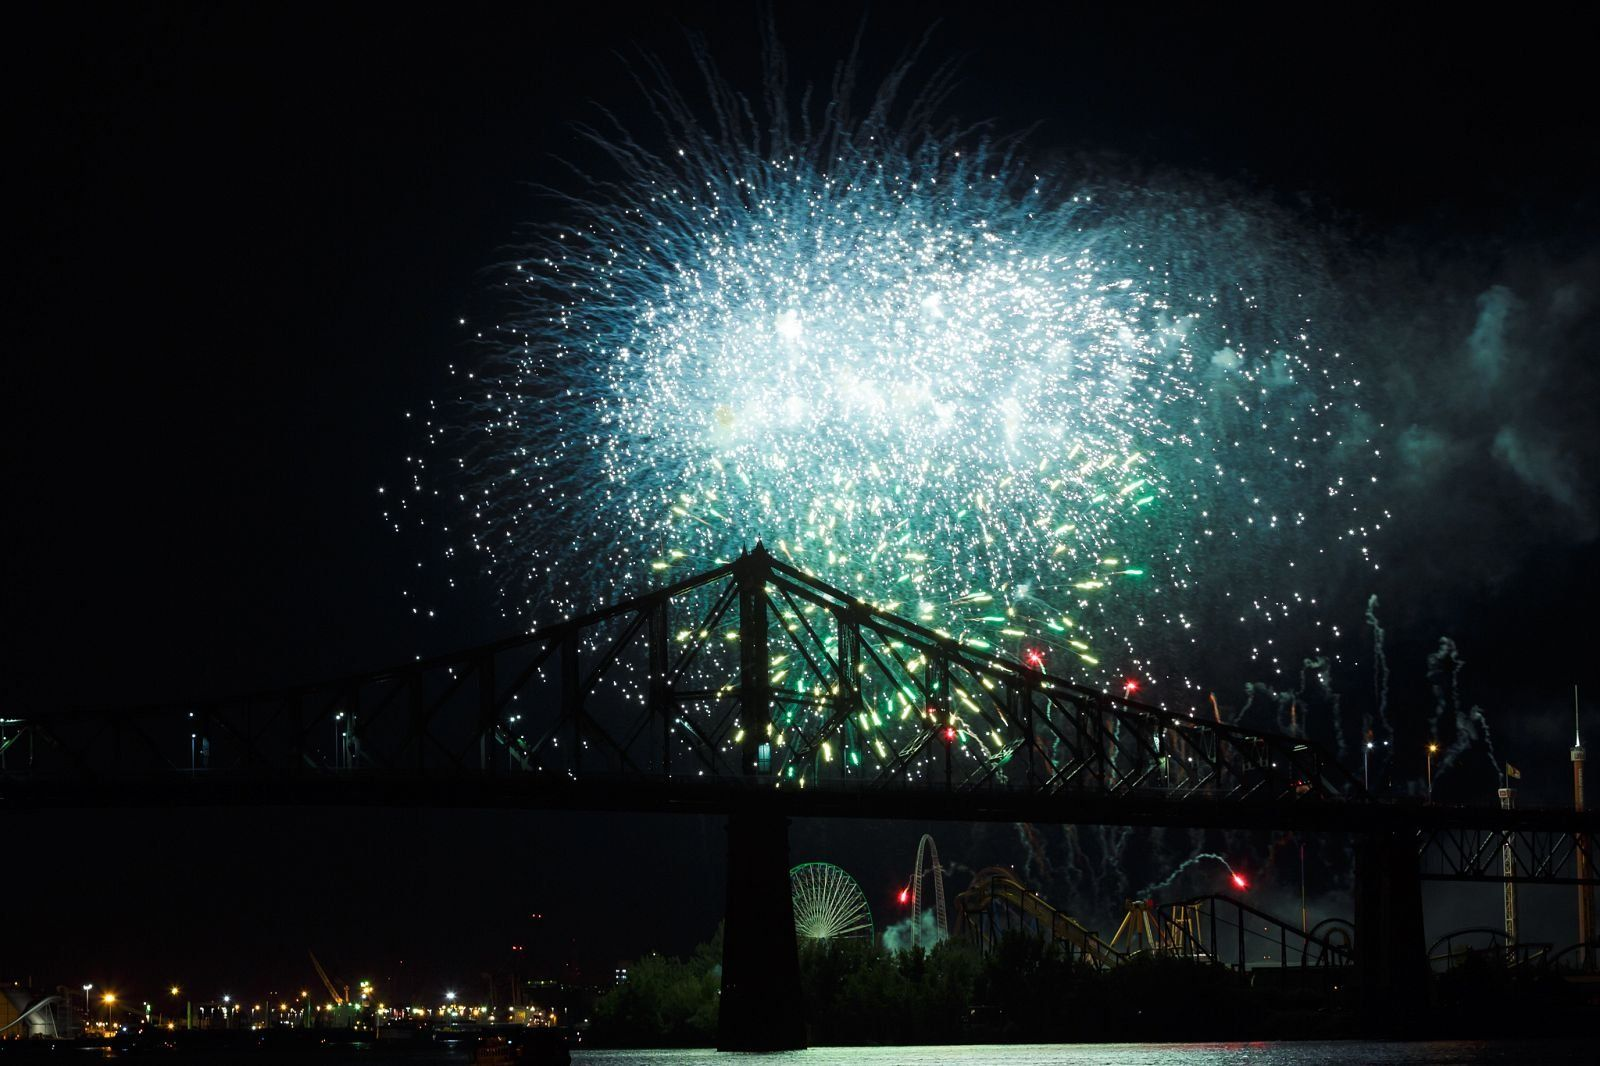 montreal_fireworks_competition_201713_1100.jpg